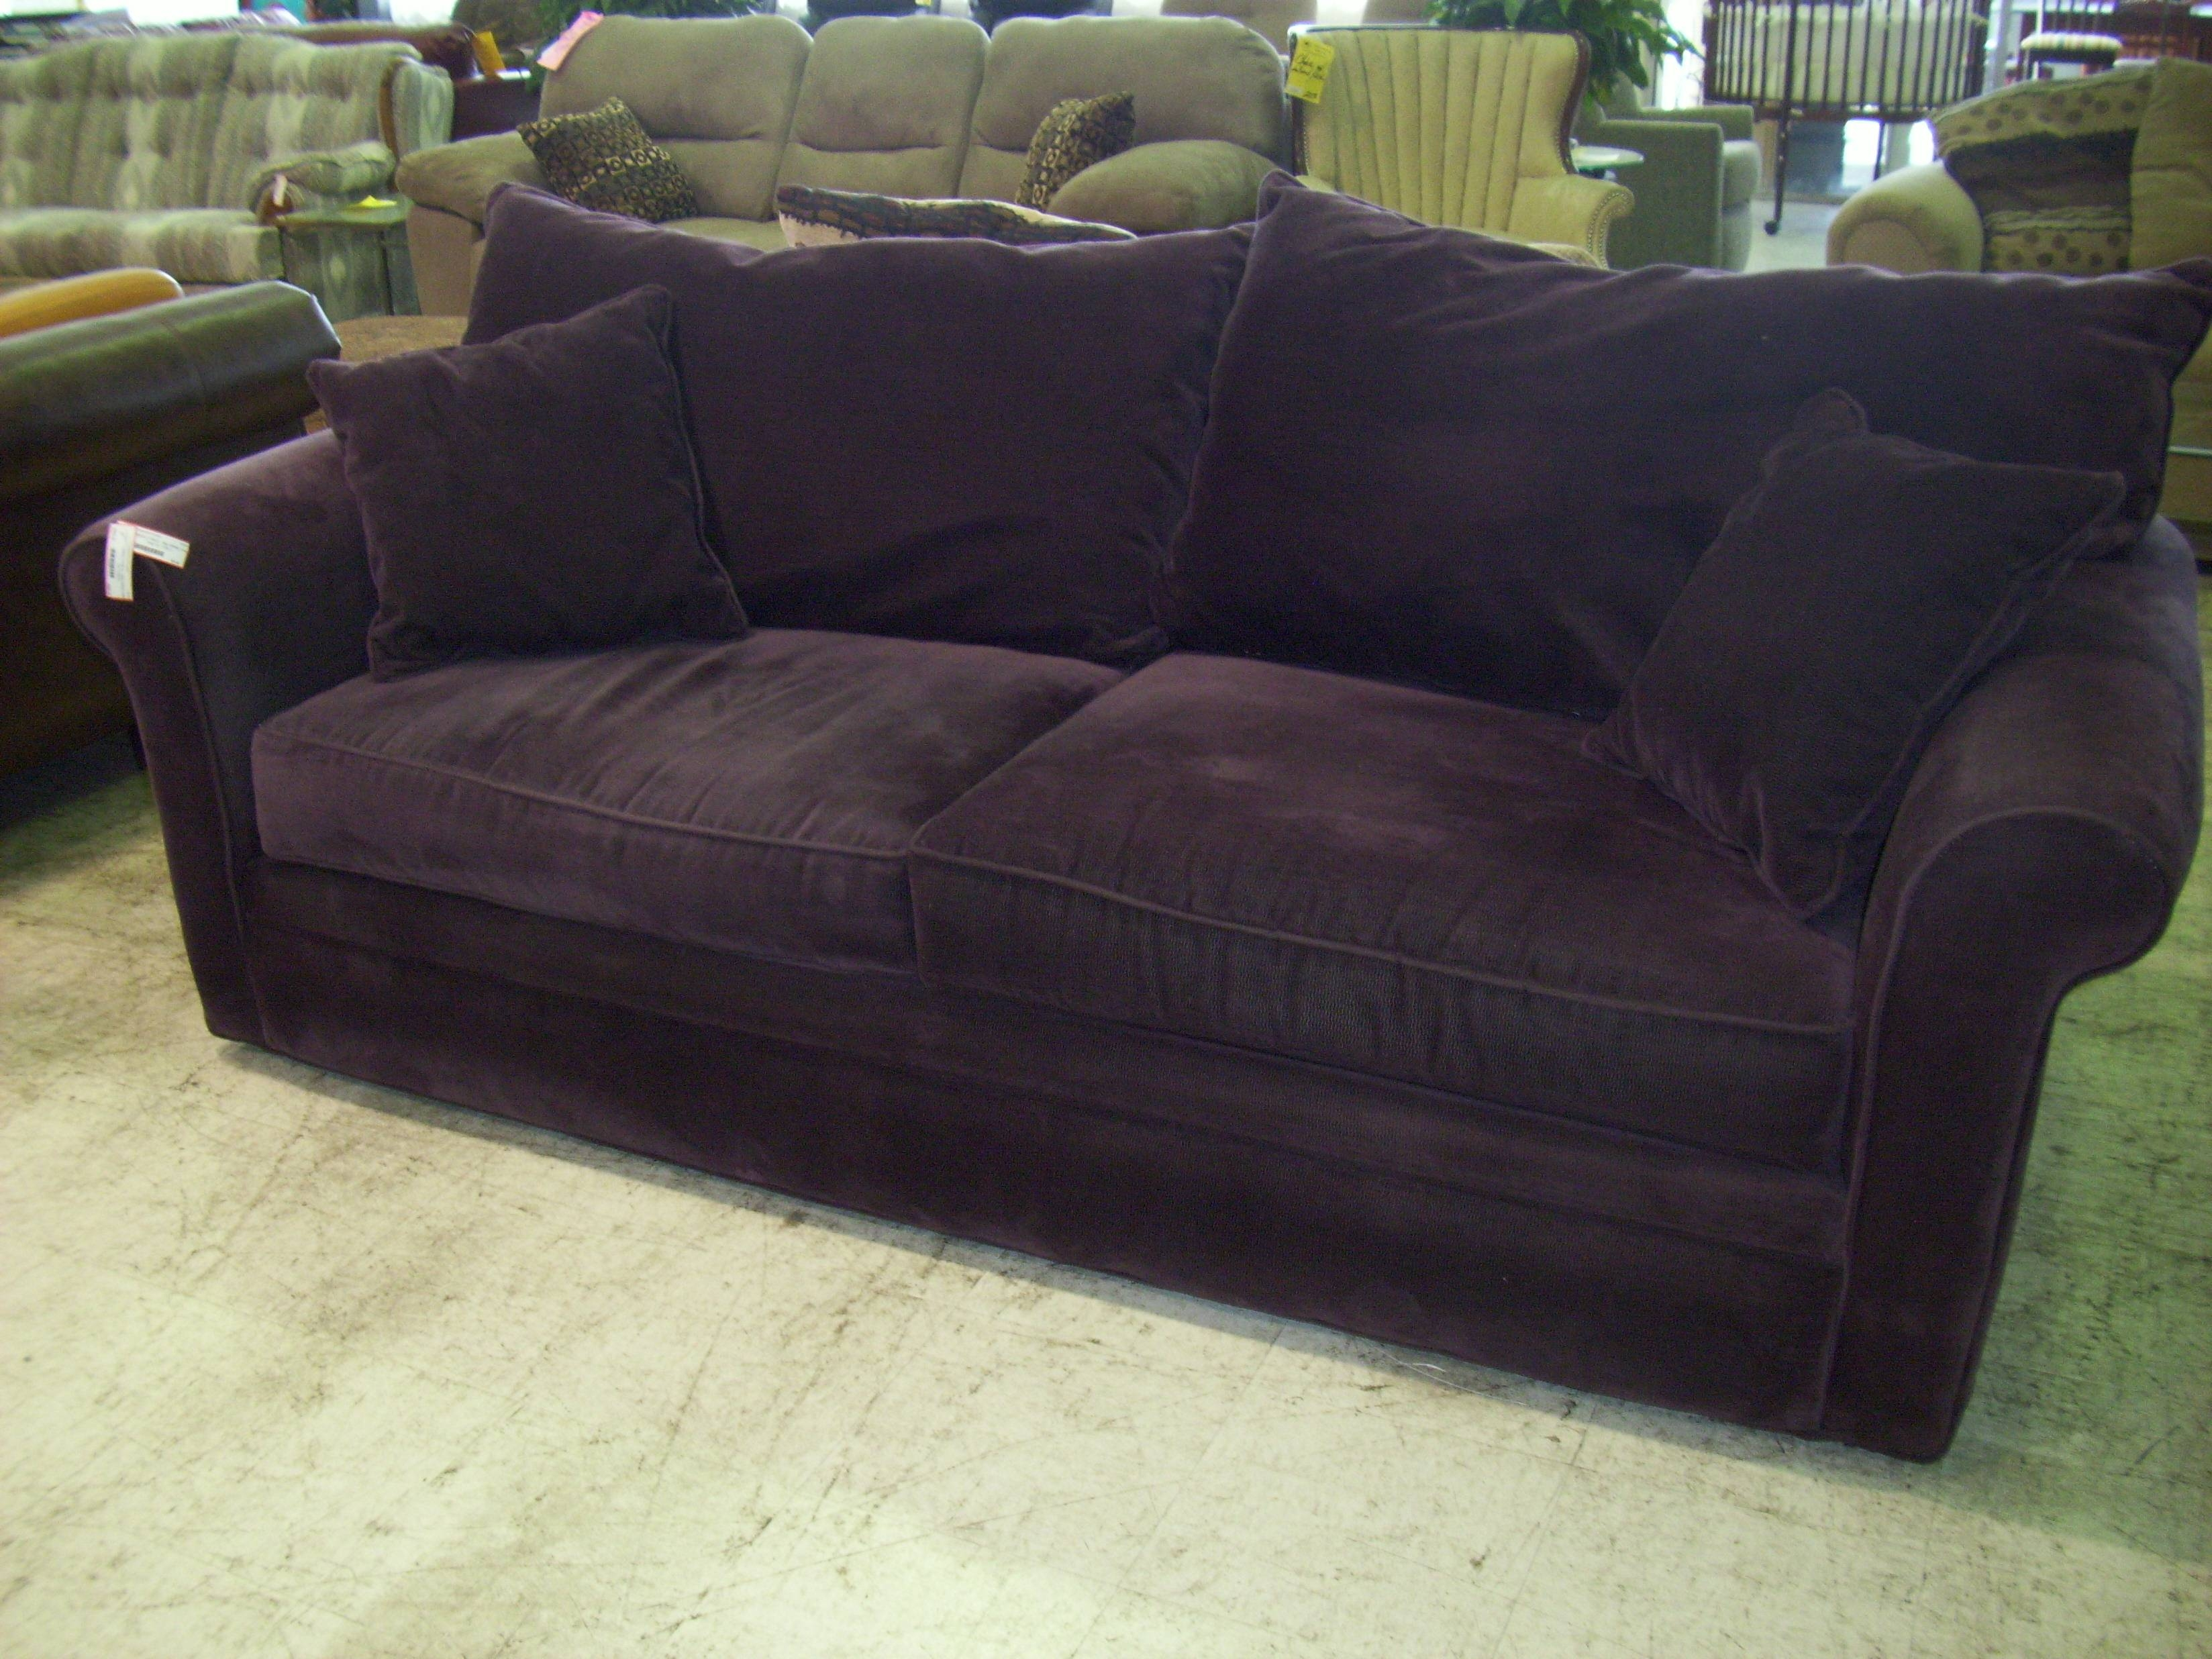 Furniture Purple Loveseat For Contemporary Lifestyle u2014 Threestems regarding Alan White Couches (Image 15 : alan white sectional - Sectionals, Sofas & Couches